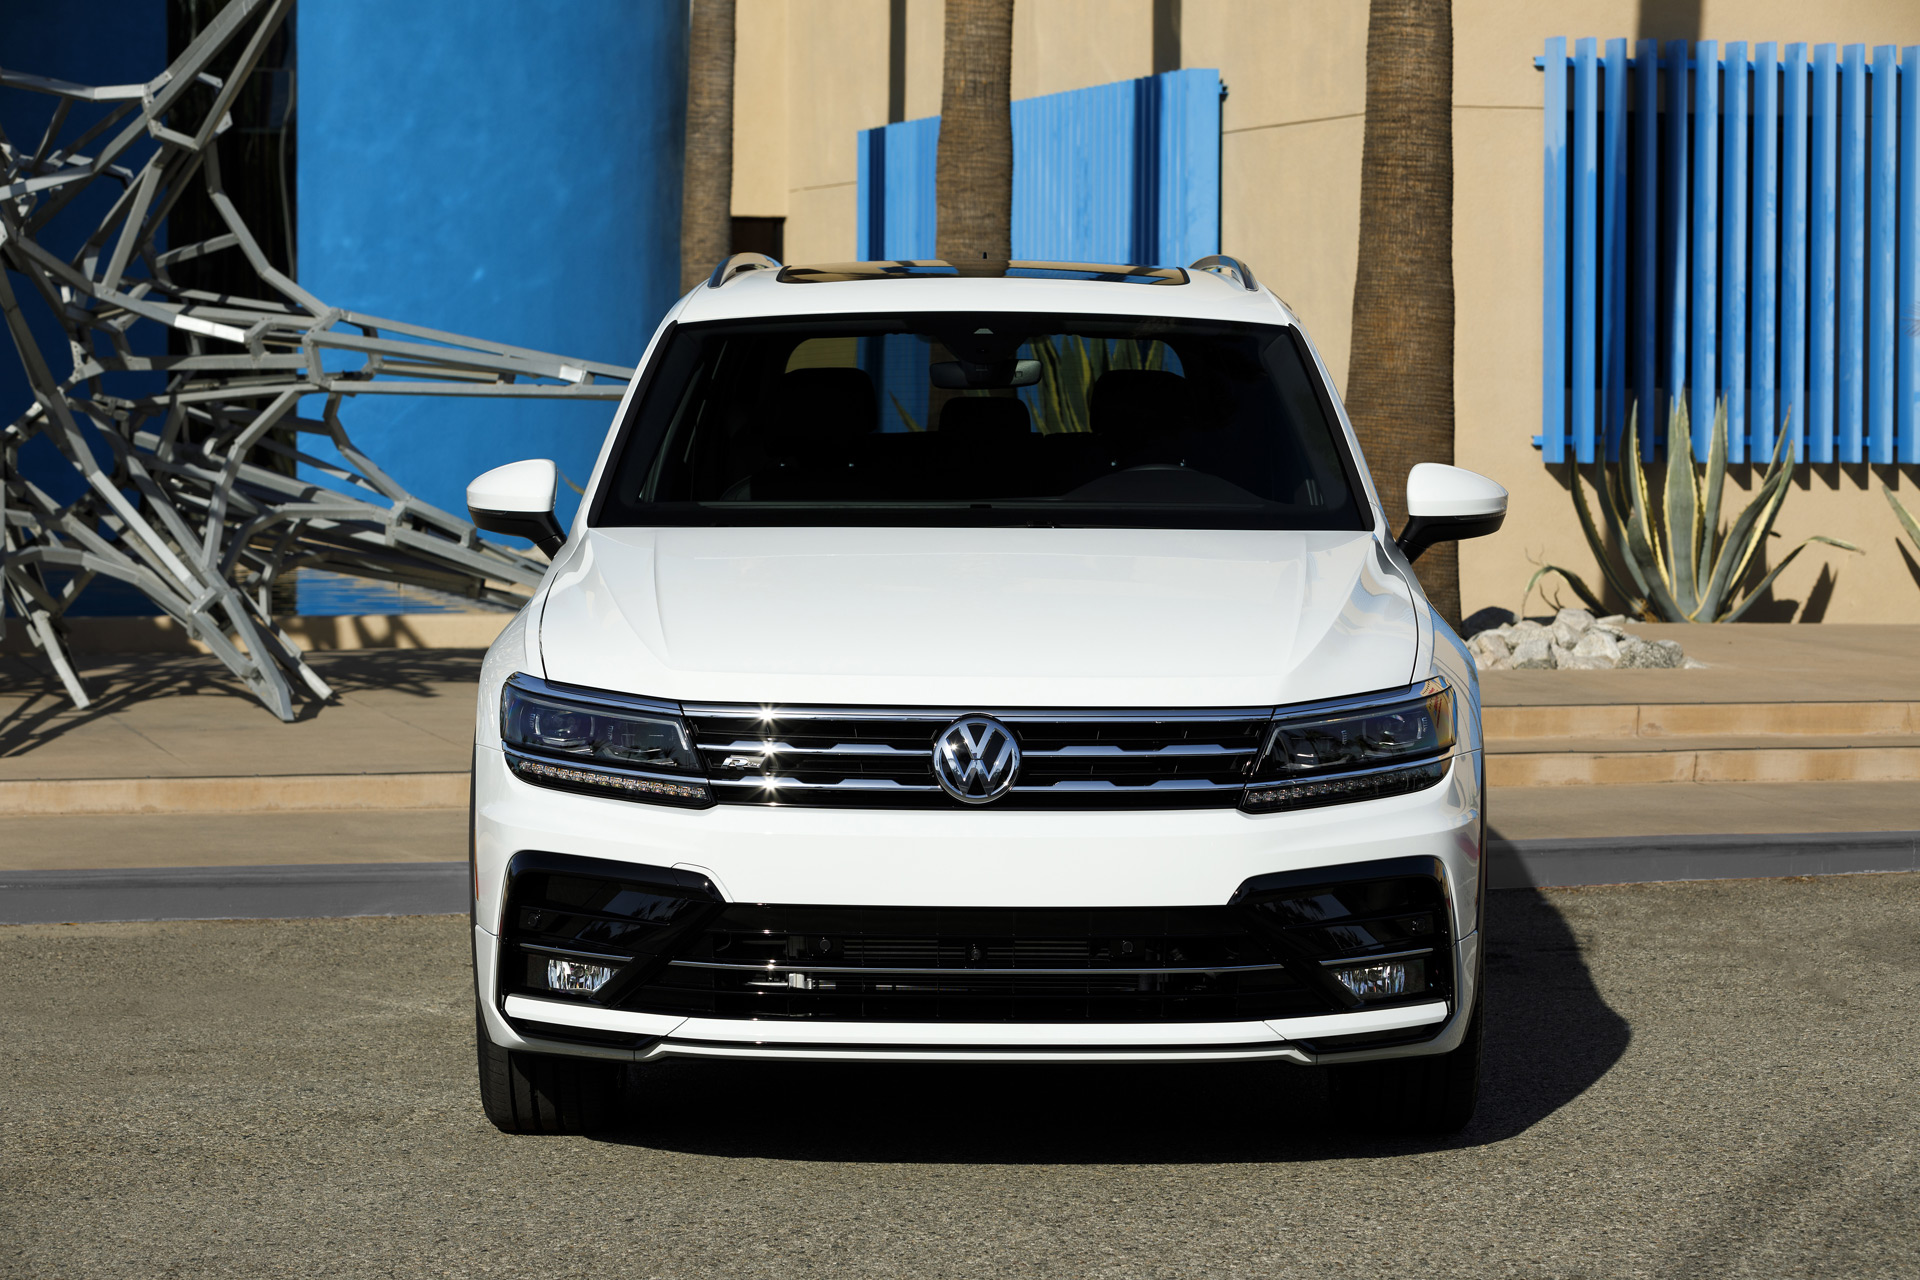 2018 volkswagen tiguan r line adds style and spice for a. Black Bedroom Furniture Sets. Home Design Ideas